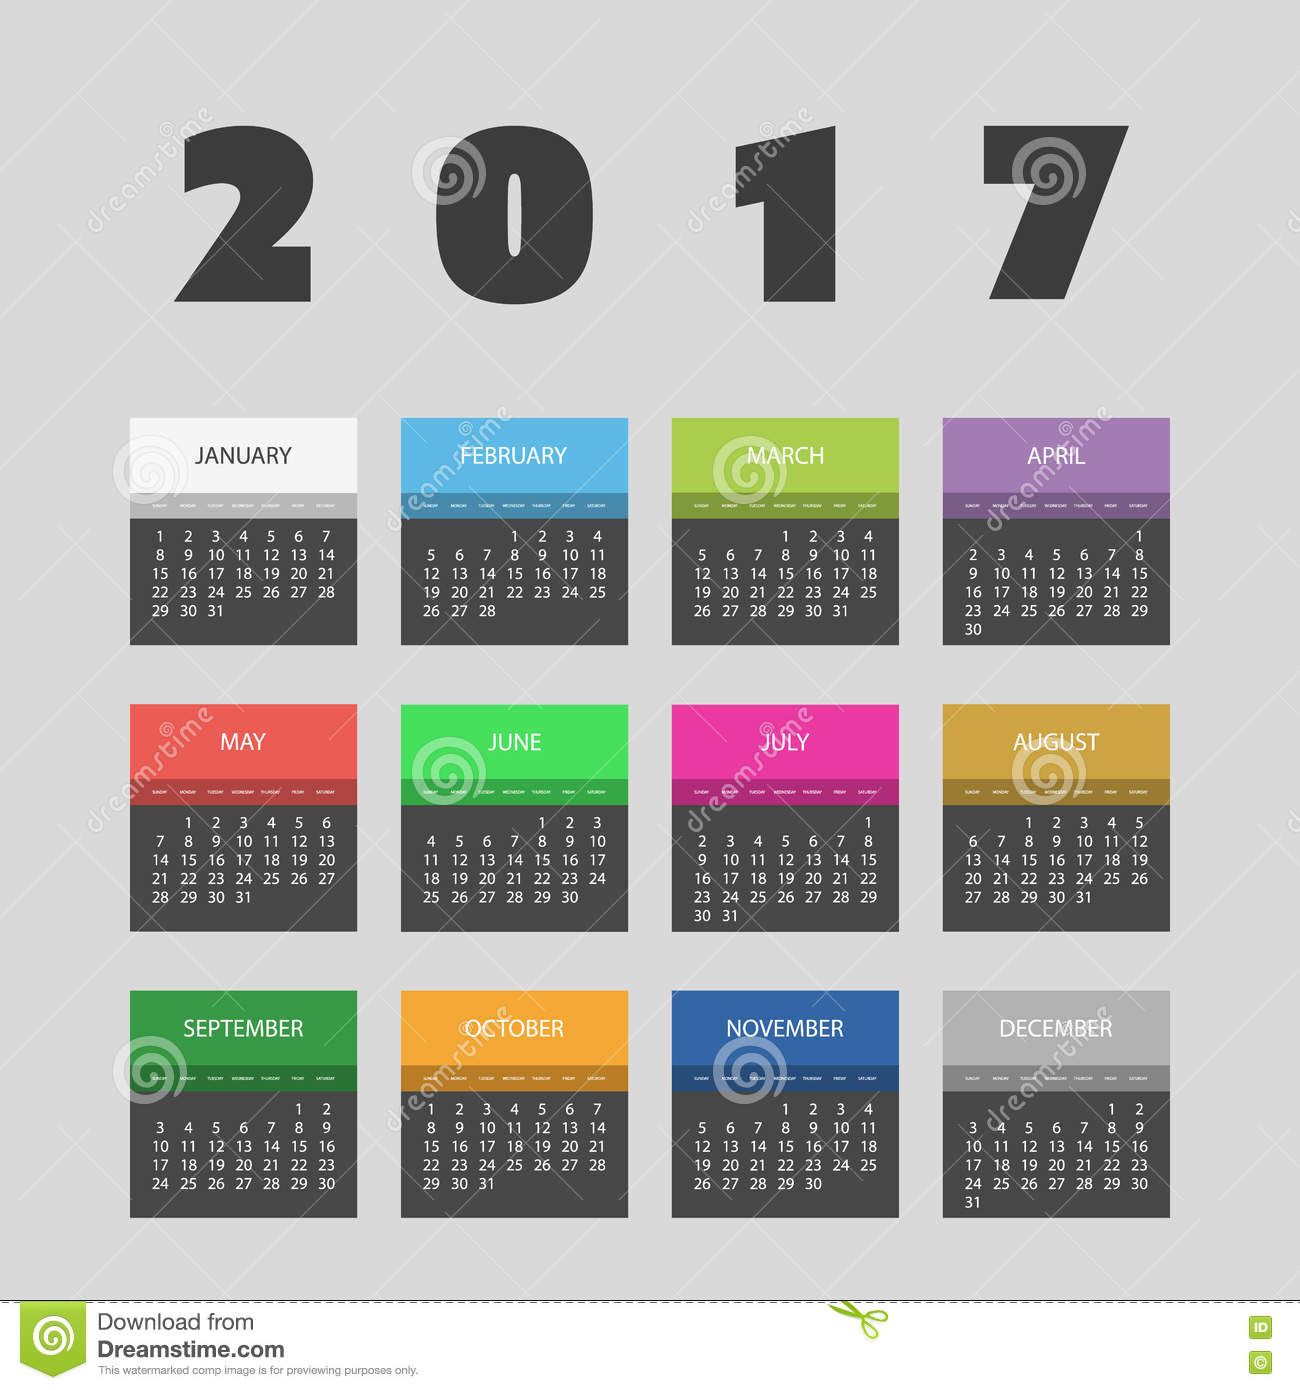 Monthly Calendar Design Creative : Colorful calendar design with different colors for